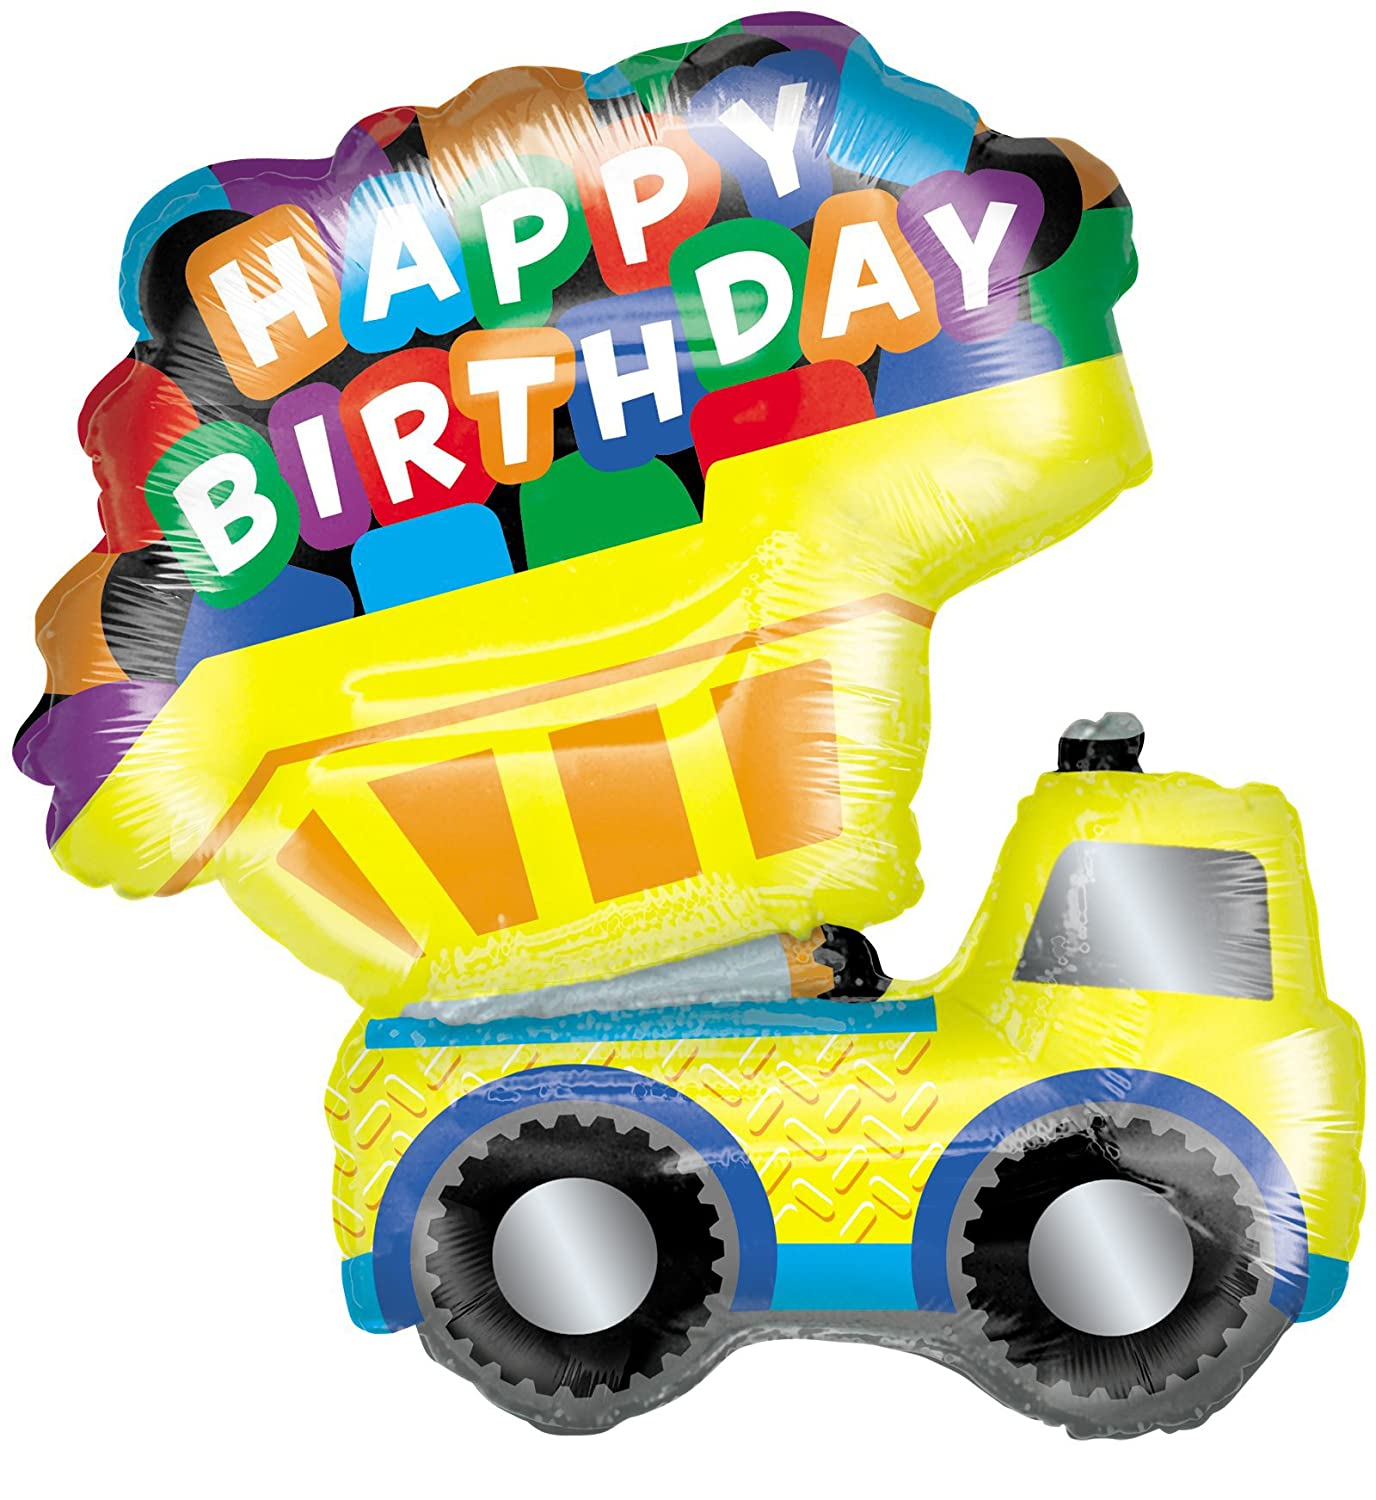 Dump Truck Jumbo 33 Foil Balloon Birthday Express 743936